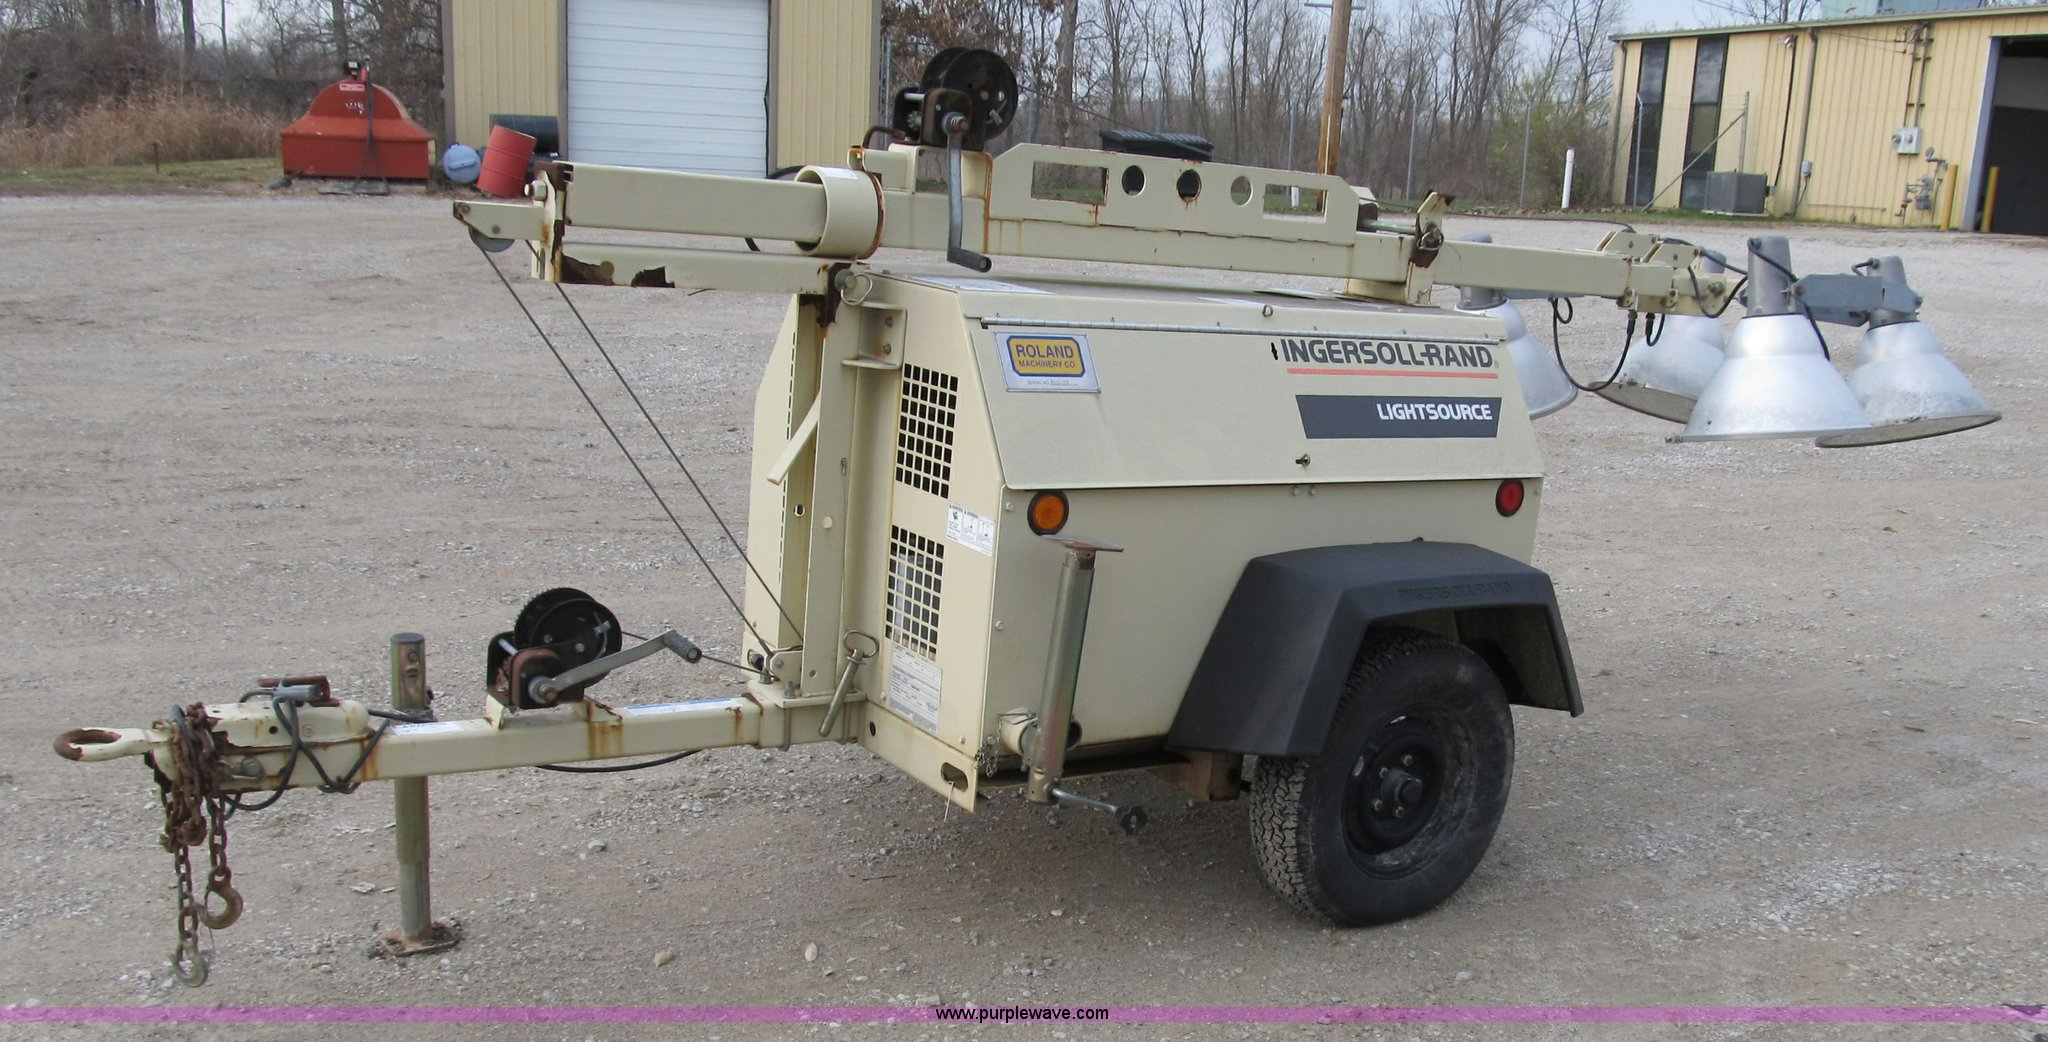 Ingersoll Rand Lightsource Light Towers Parts Centralroots Com